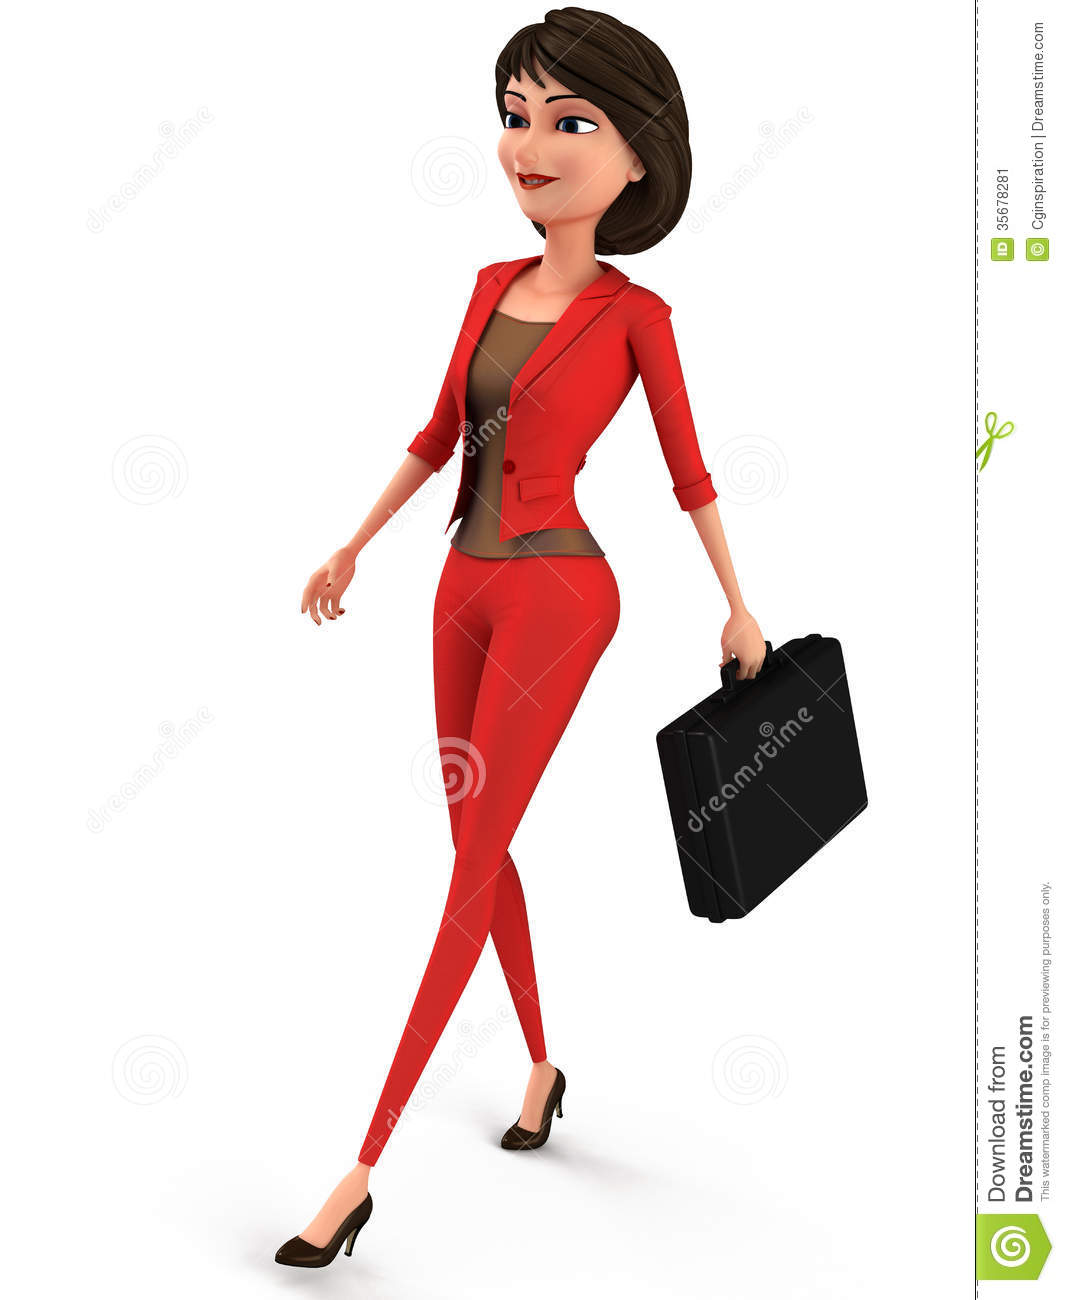 Free clipart graphics woman vector freeuse download Business About Women Clipart - Clipart Kid vector freeuse download